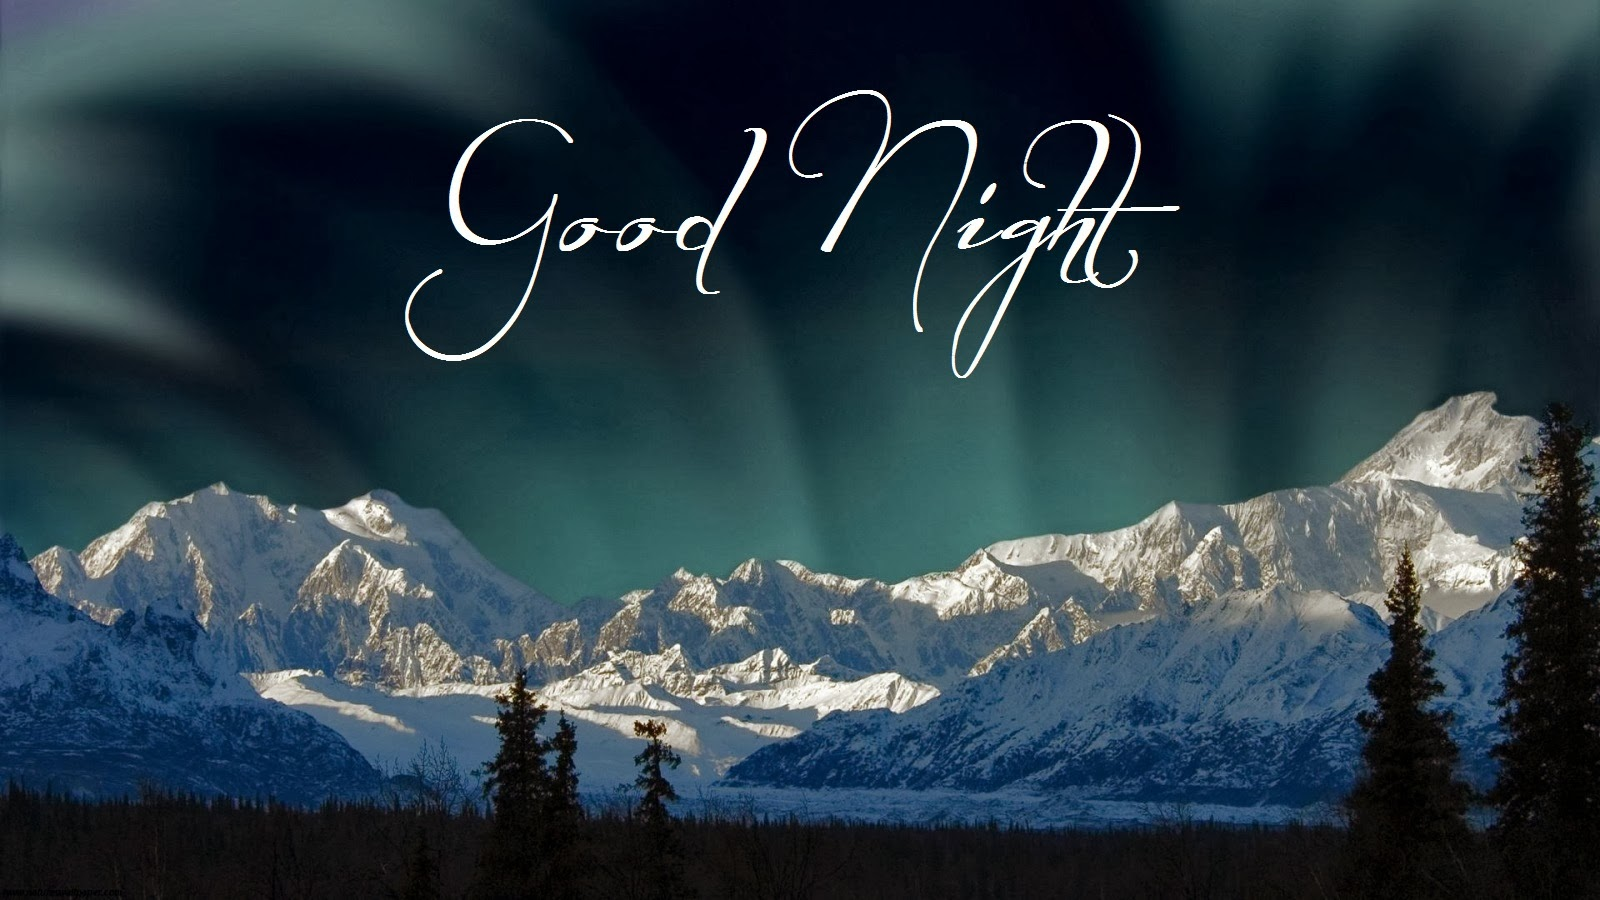 Love Wallpaper With Good Night : Lovely Good Night wallpapers ~ Allfreshwallpaper